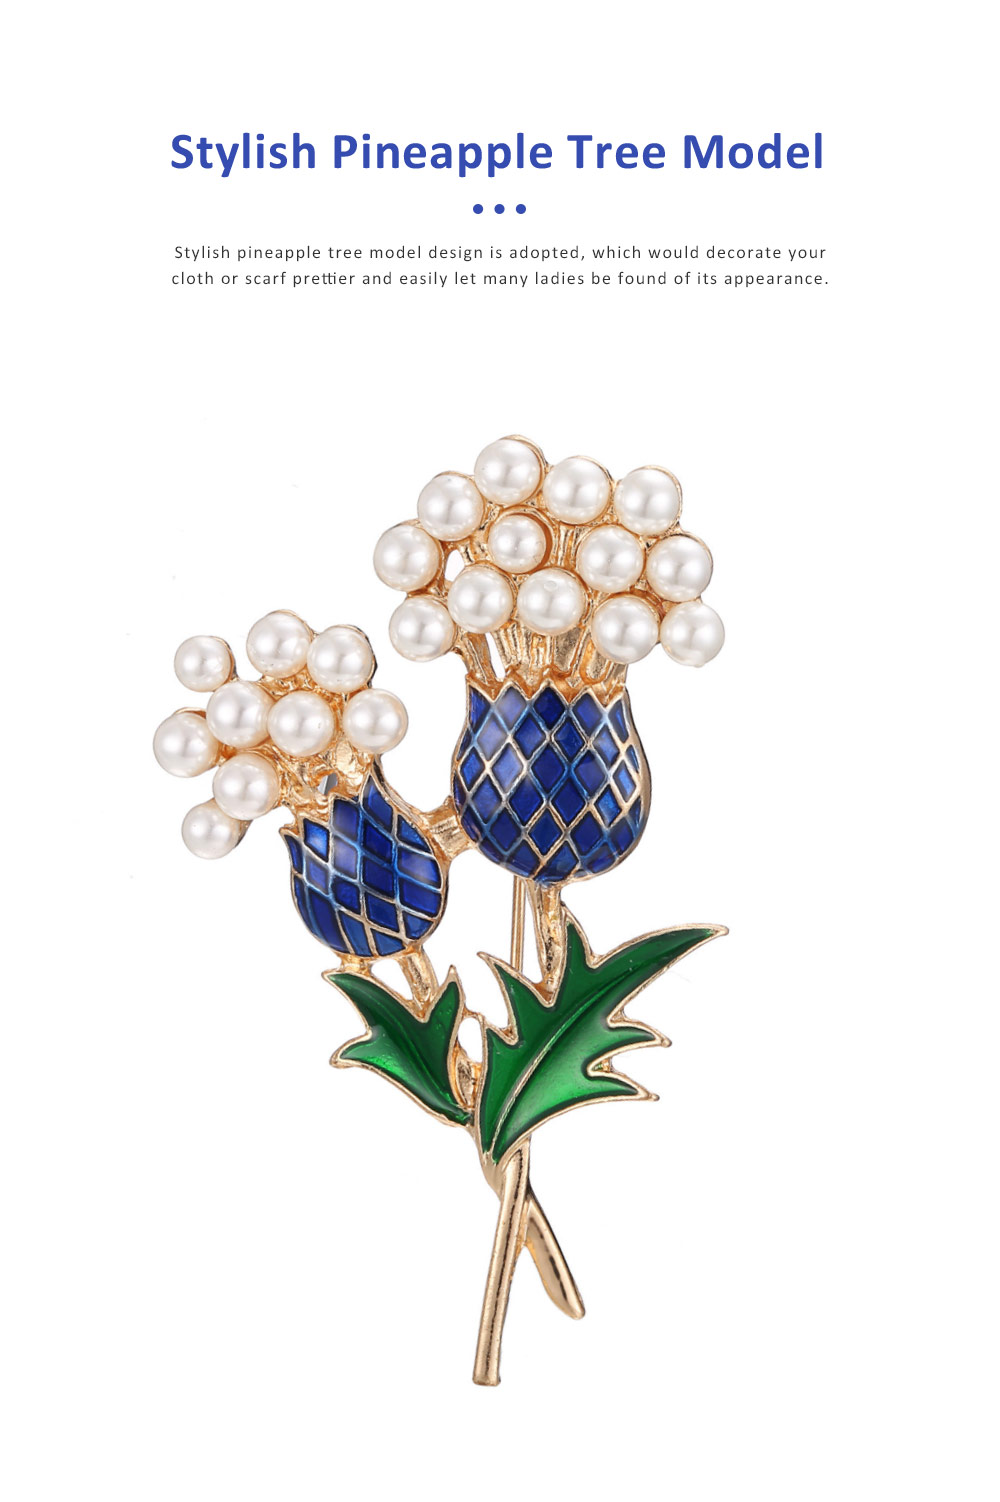 Elegant Brooch Oil-spot Glaze Pearl Decoration Pineapple Tree Breastpin, Delicate Fine Shiny Durable Alloy Brooch Clothes Scarf Ornament 5